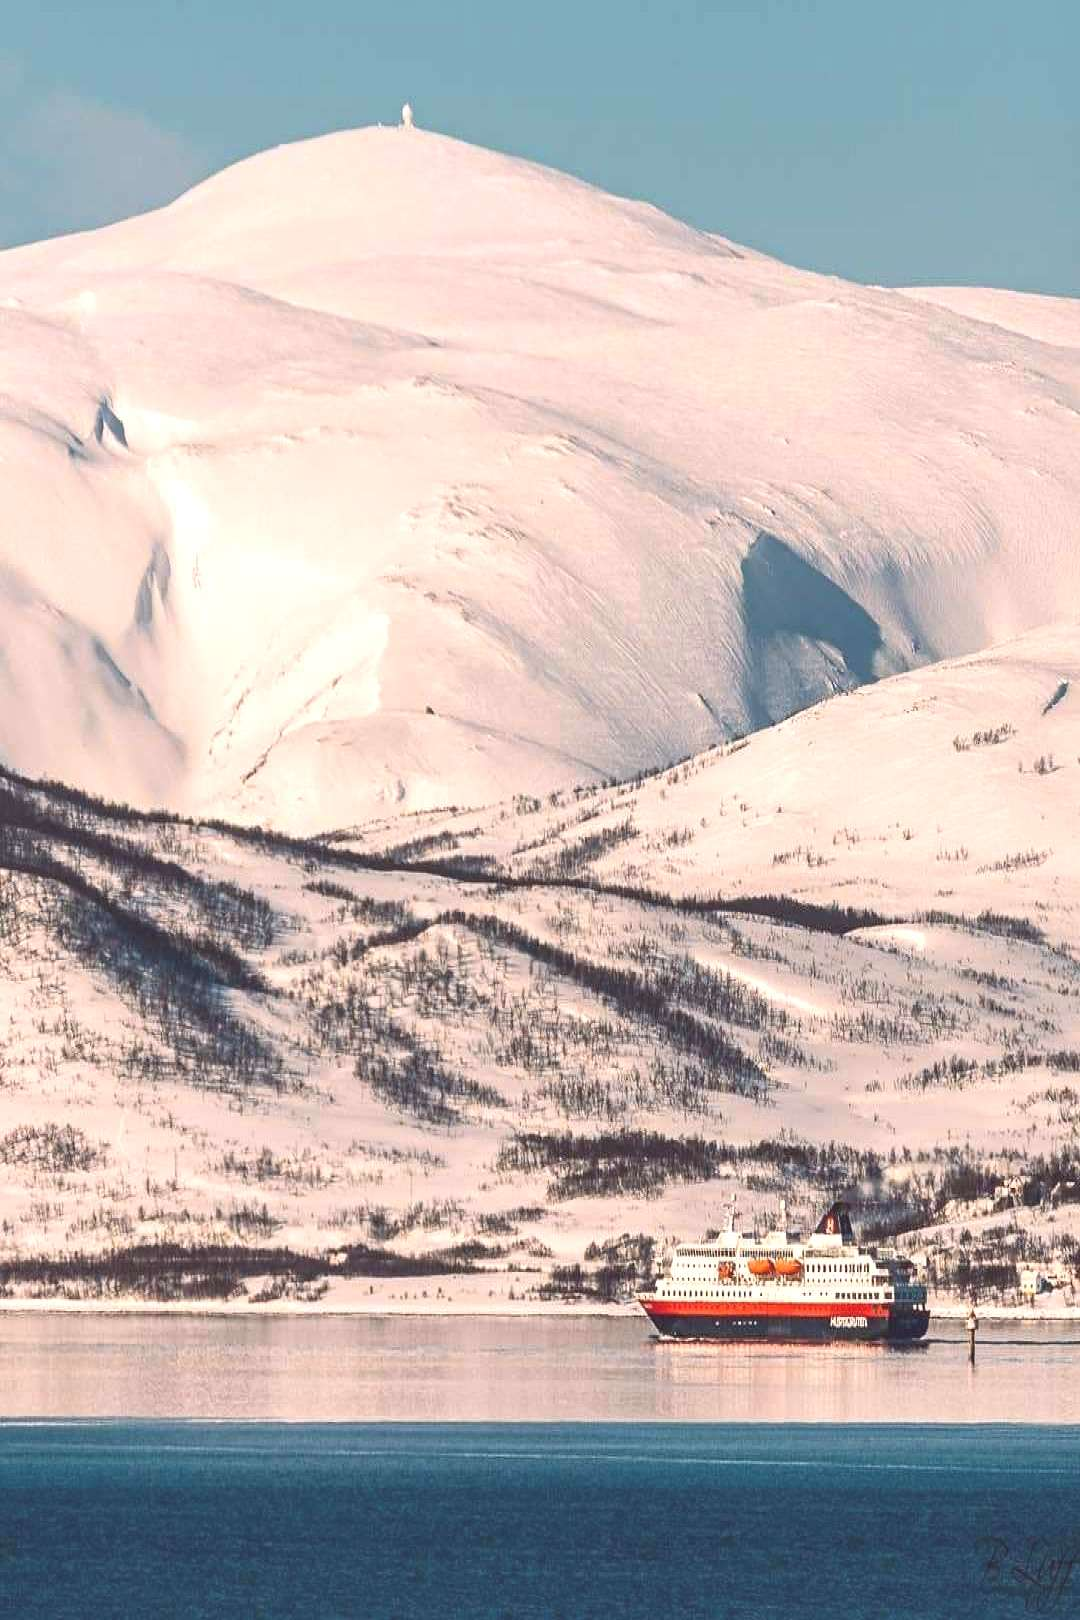 Finally the sun paid a visit again in arctic Norway Right when the Hurtigruten the traditional Nor